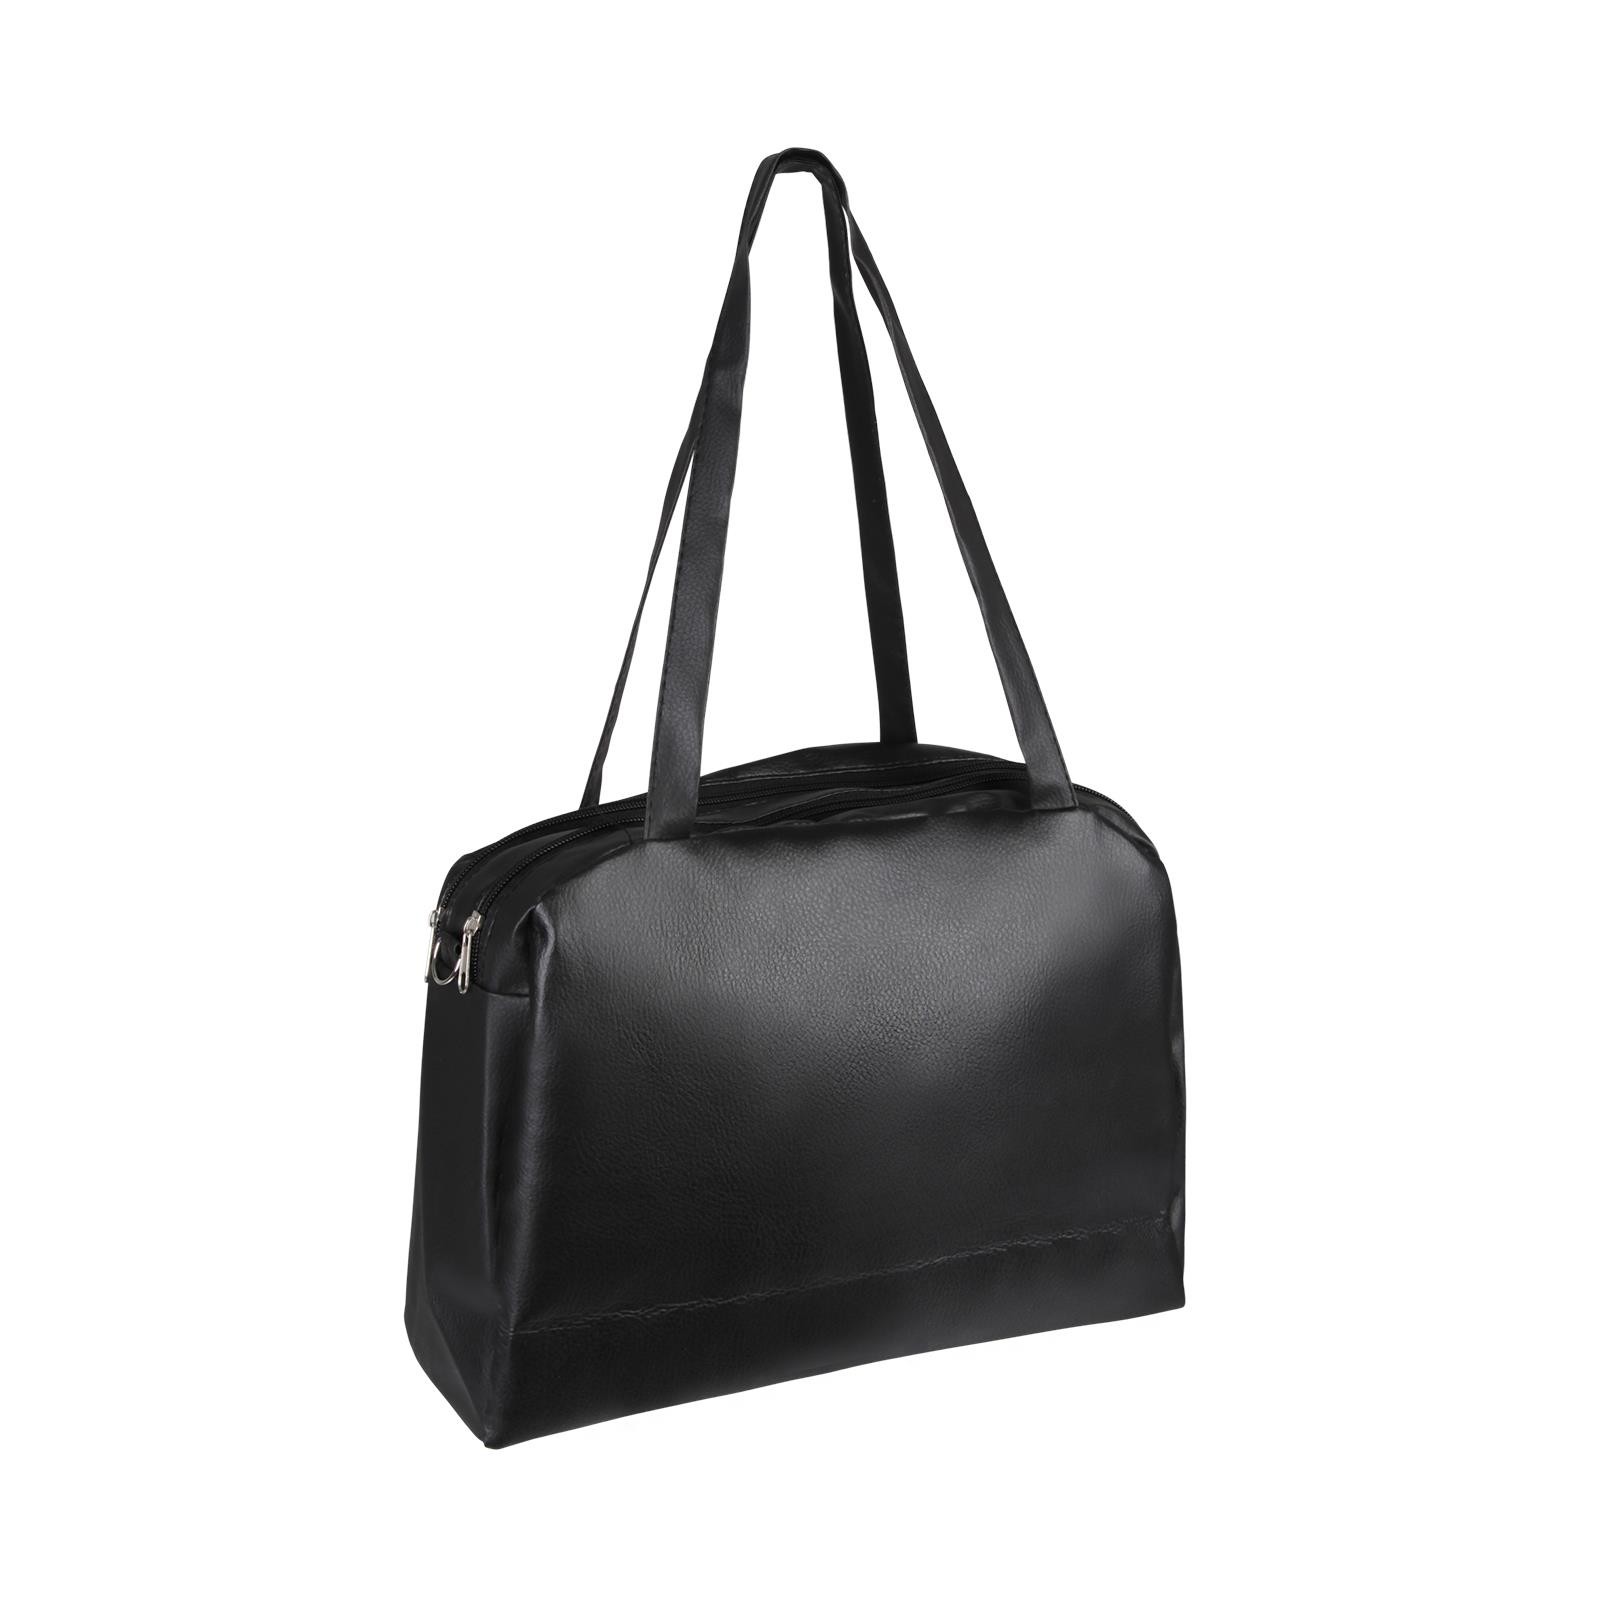 Medium-Handbag-Shoulder-Bowler-Bag-Vegan-Leather-Tote-Shop-Office-Work-Fashion thumbnail 4